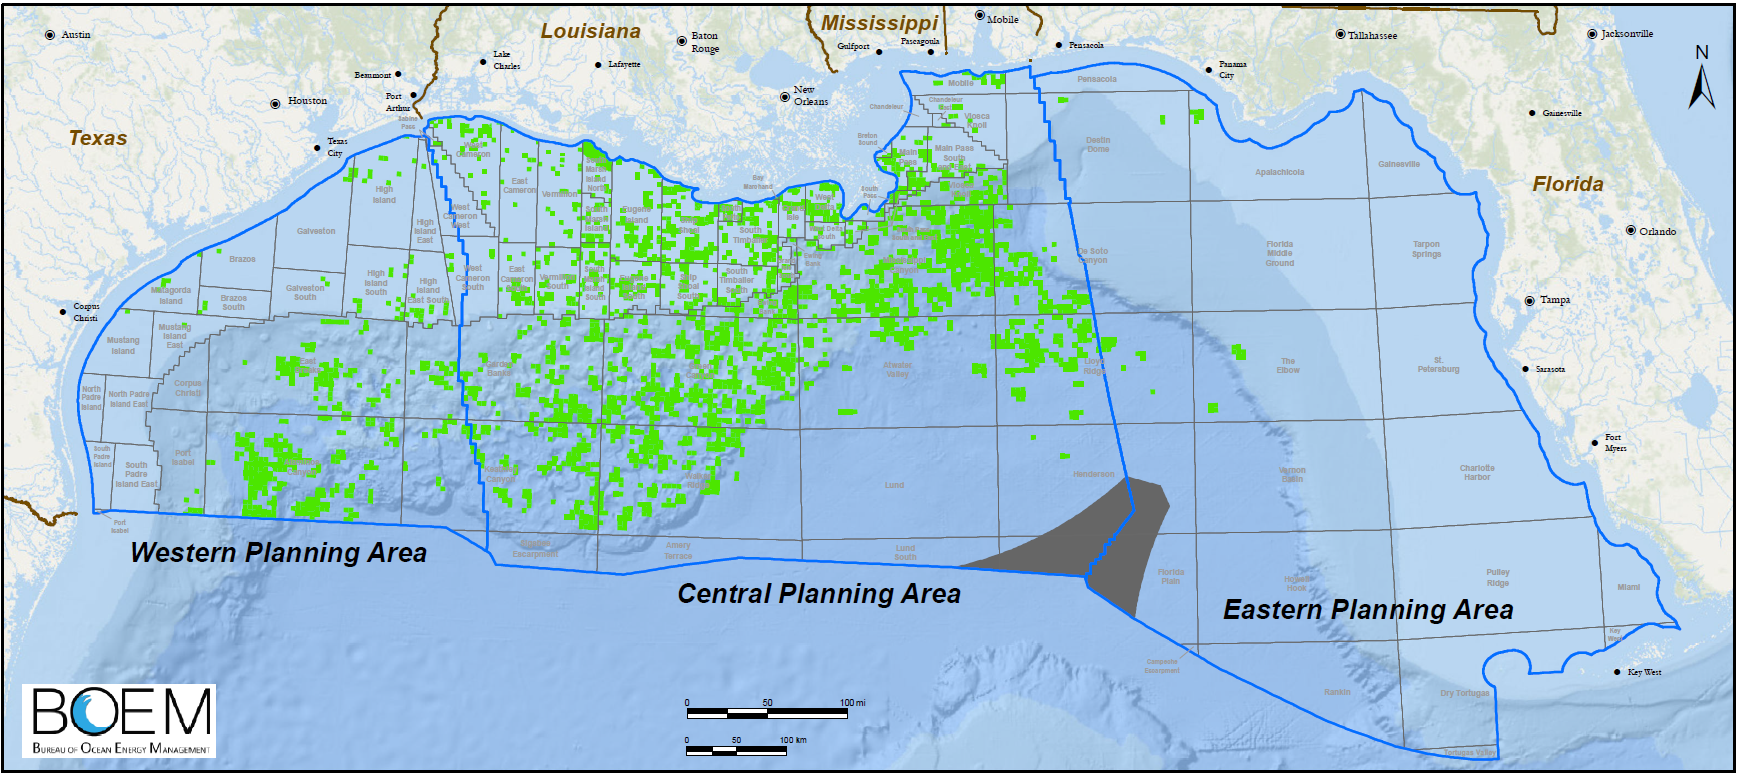 Planning areas, region blocks and active leases in the Gulf of Mexico as of February 1, 2018, as administered by the U.S. Bureau of Ocean Energy Management. There are several thousand leases in the Gulf of Mexico, covering almost 15 million acres